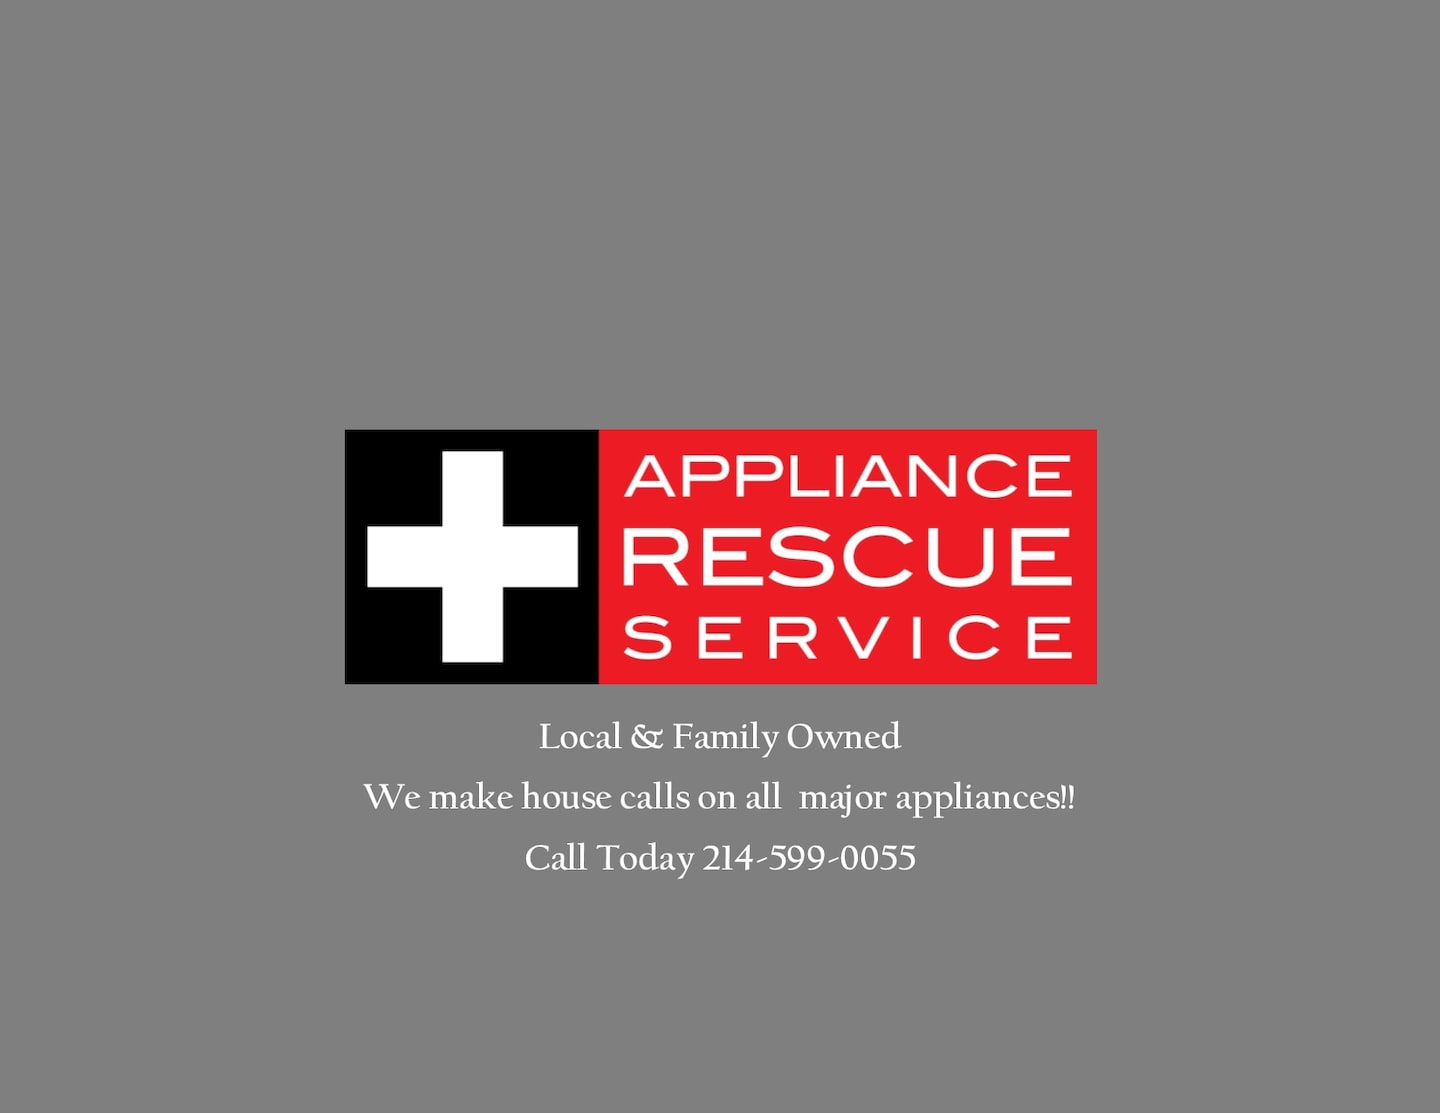 Appliance Rescue Svc